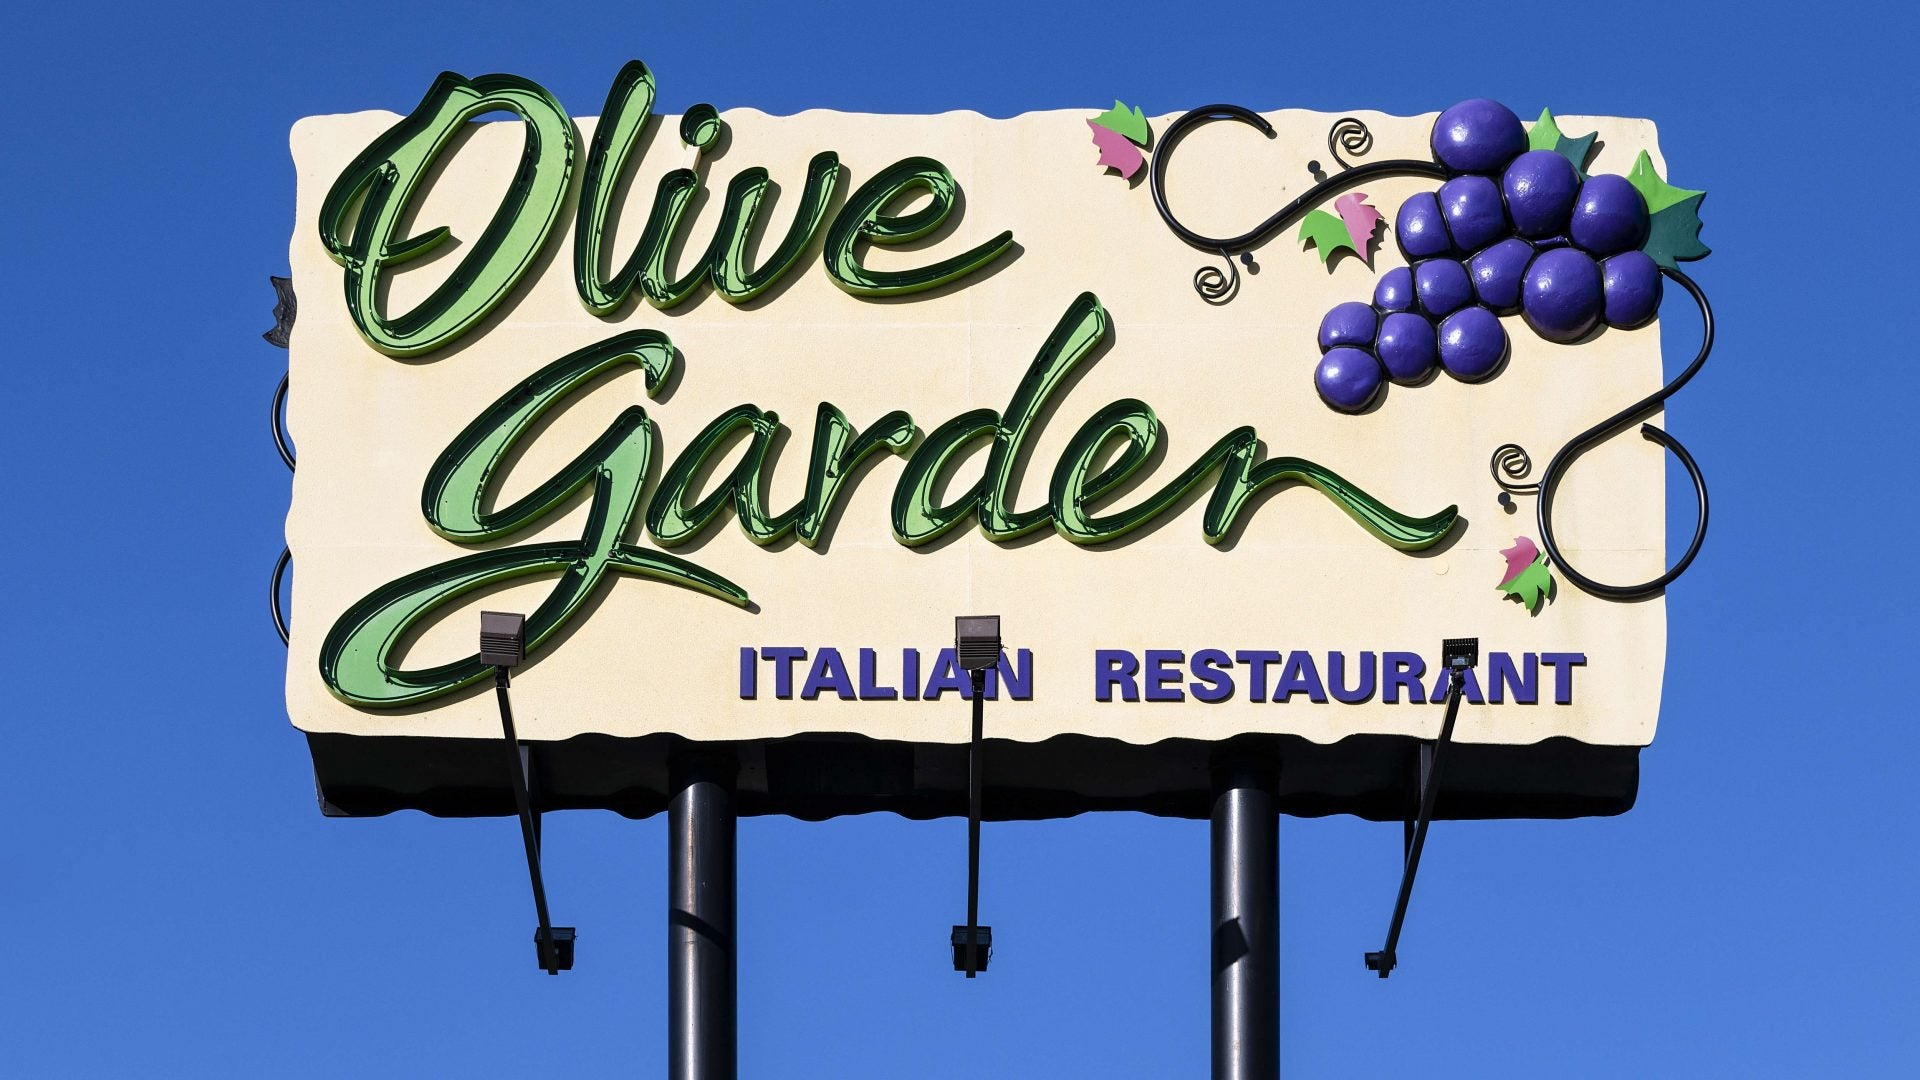 Olive Garden Employee To File Lawsuit After Customer Demanded Non-Black Server